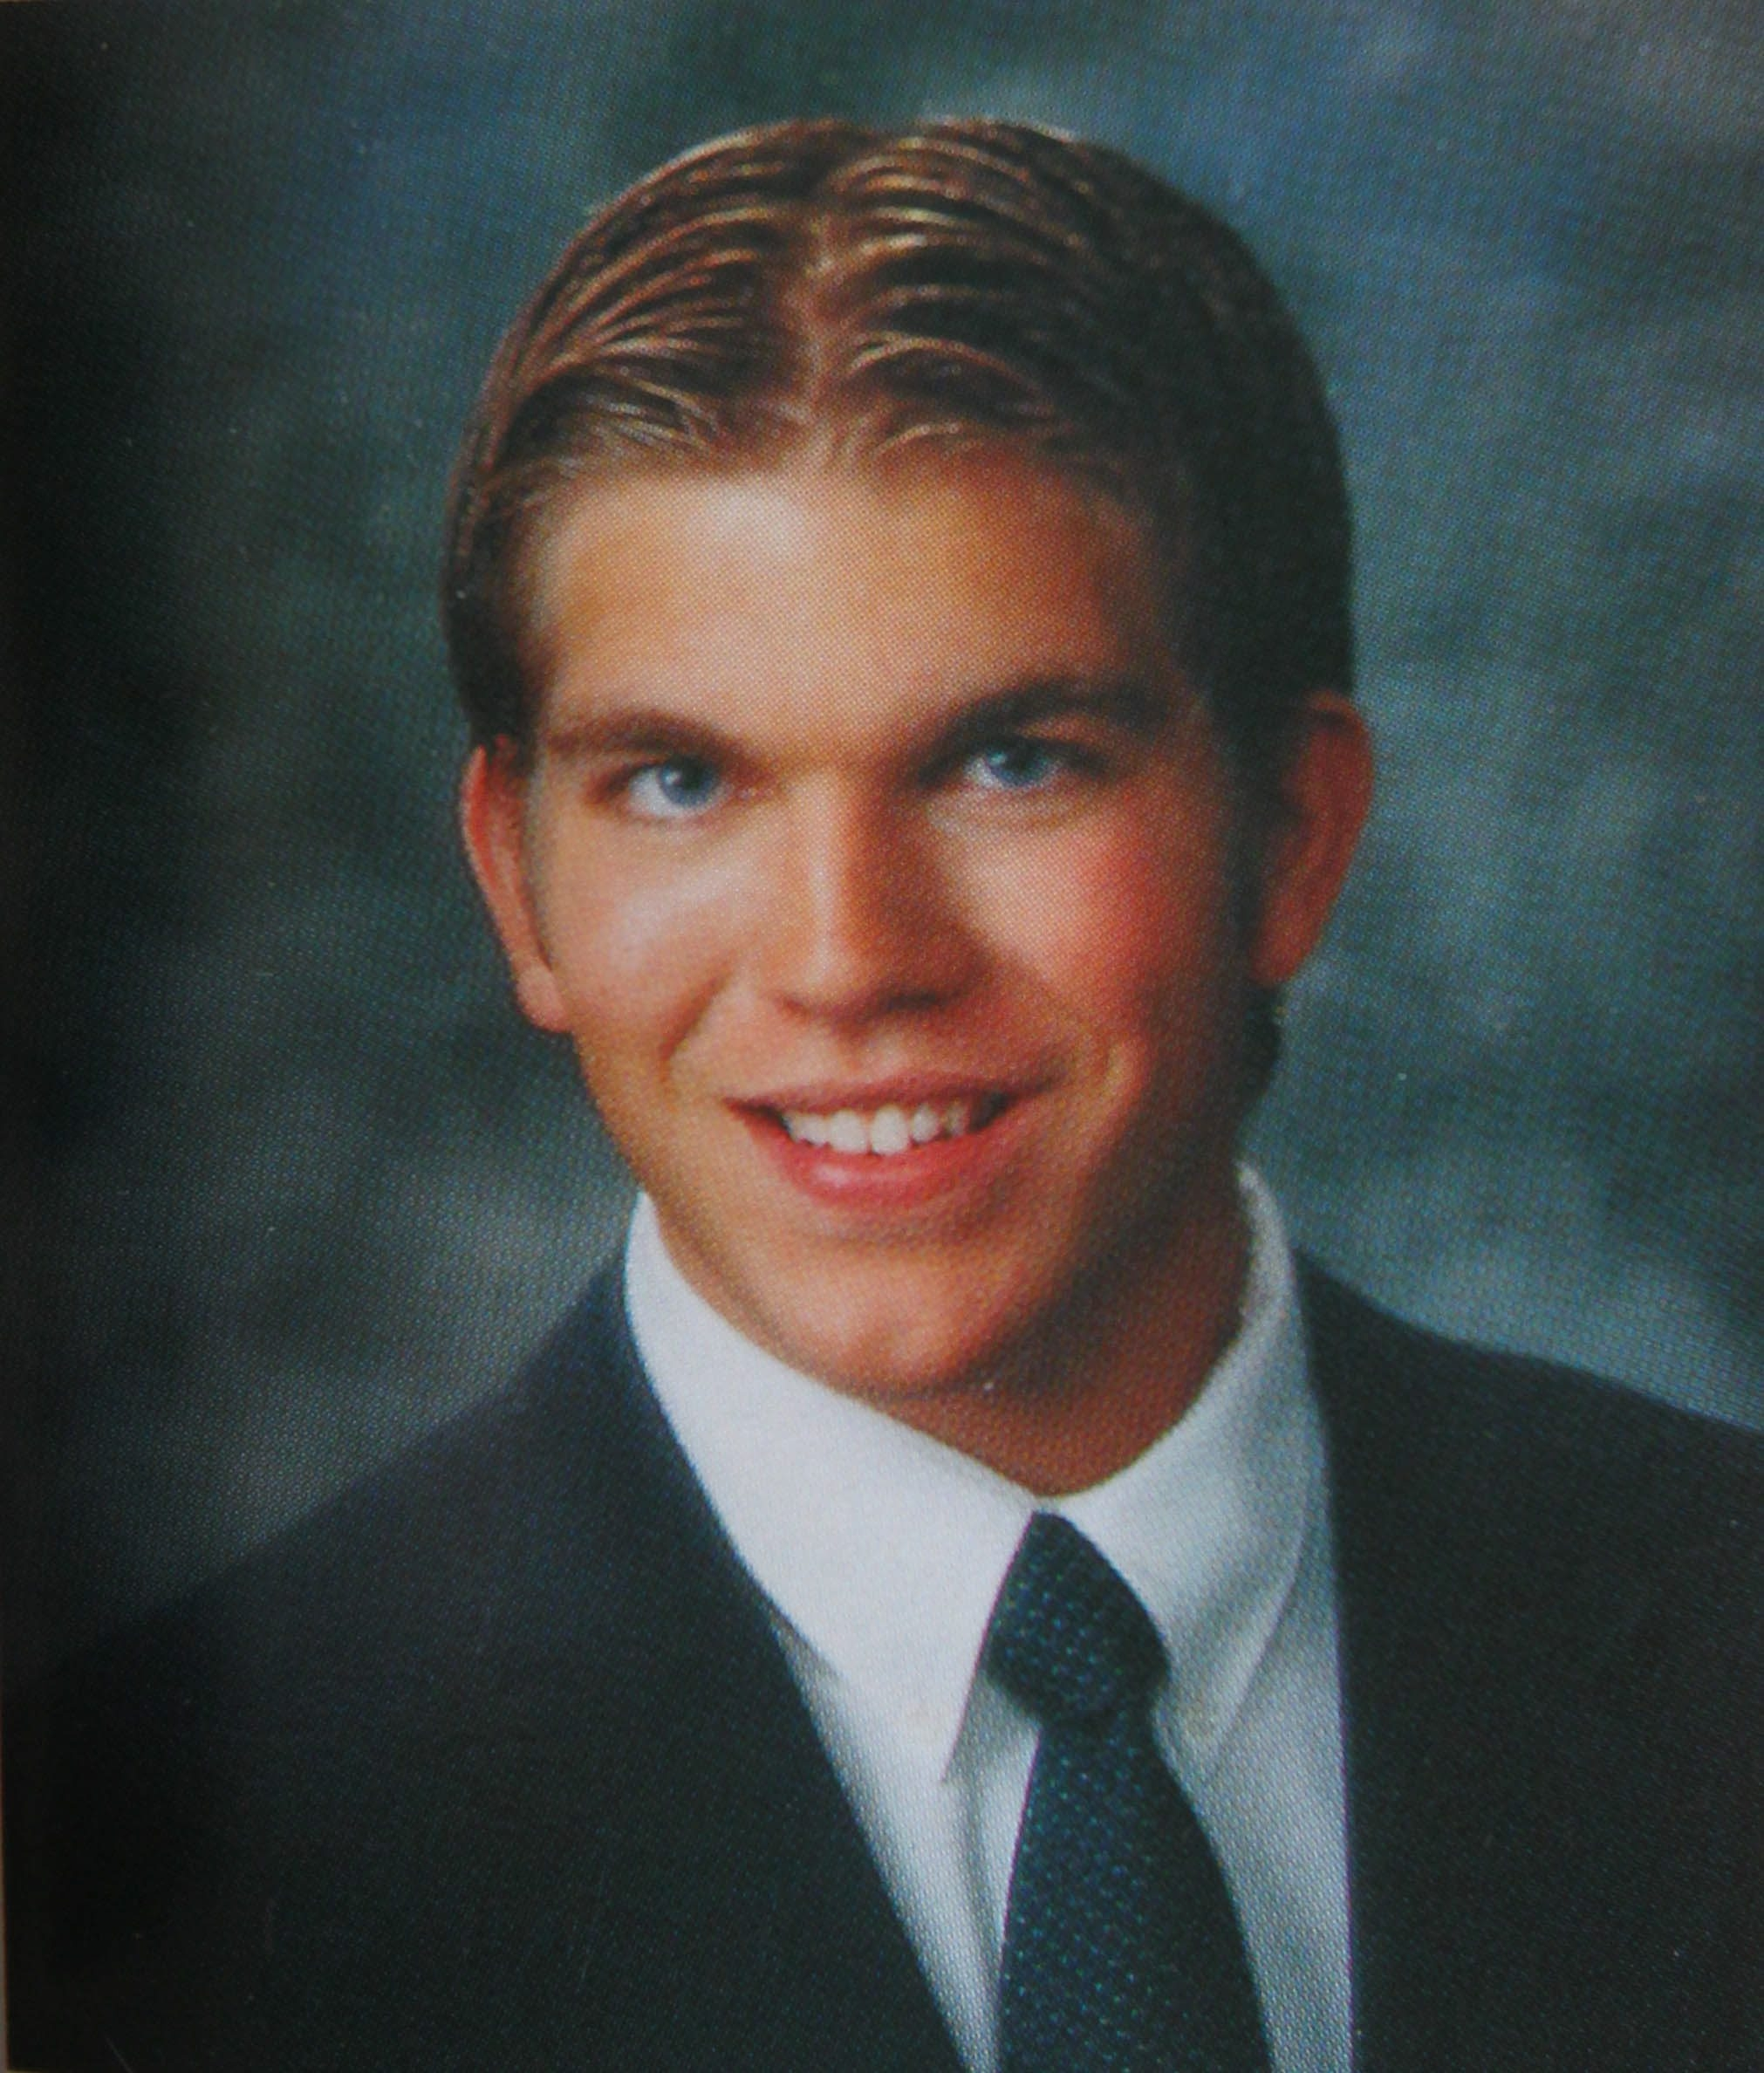 Miller graduated from high school in 1999.